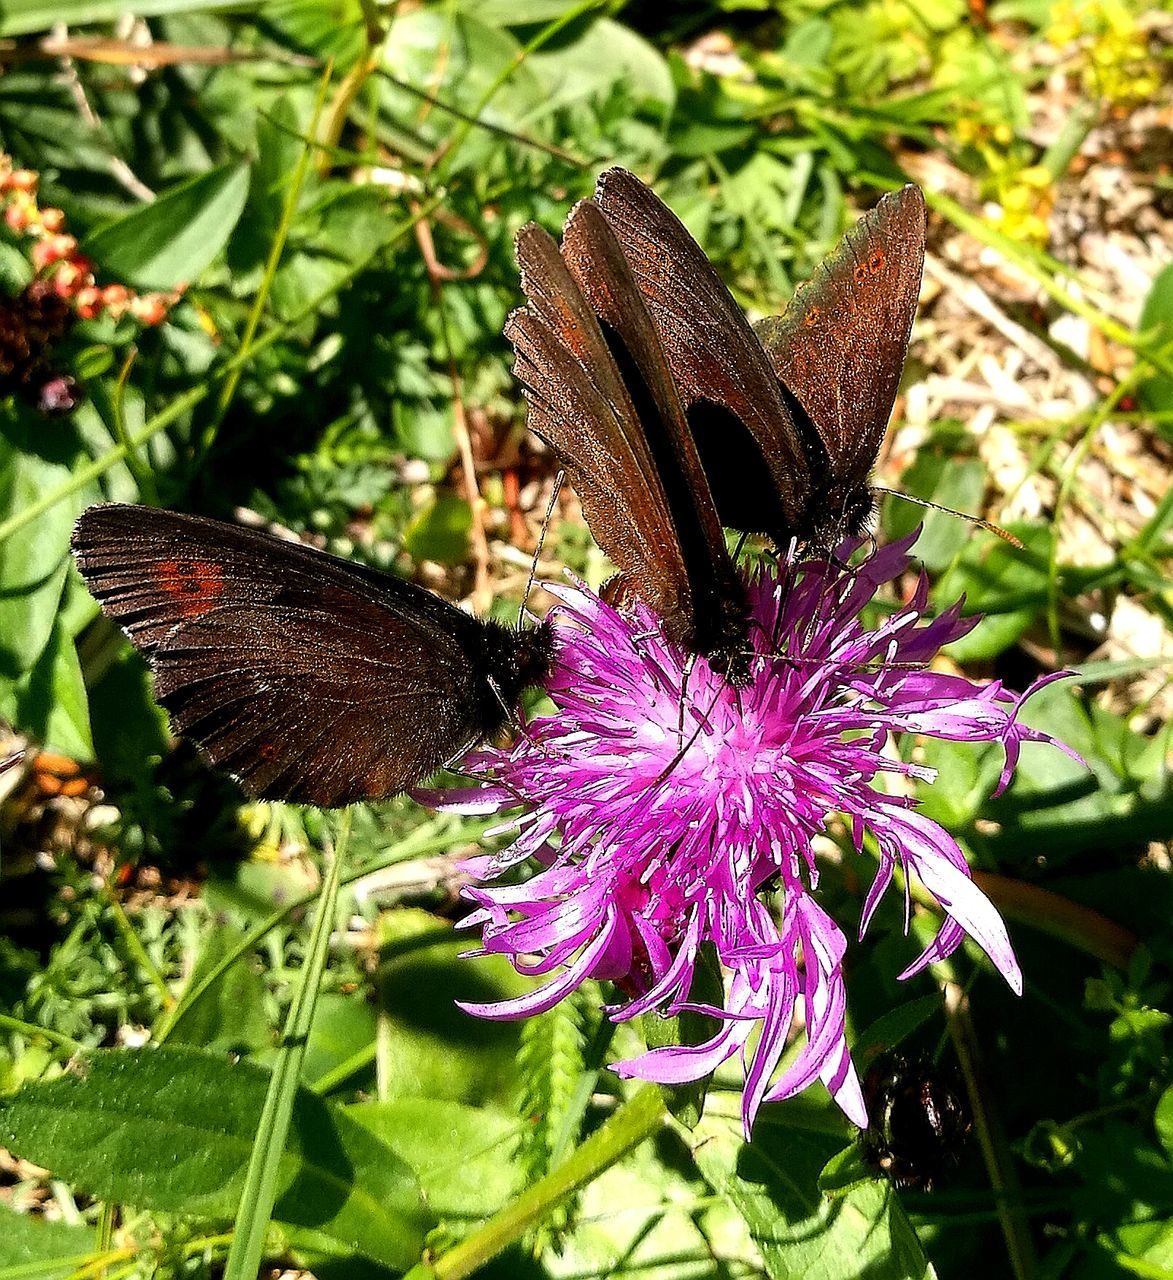 flower, insect, animal themes, nature, one animal, growth, animals in the wild, fragility, butterfly - insect, no people, plant, purple, beauty in nature, freshness, day, outdoors, butterfly, close-up, flower head, pollination